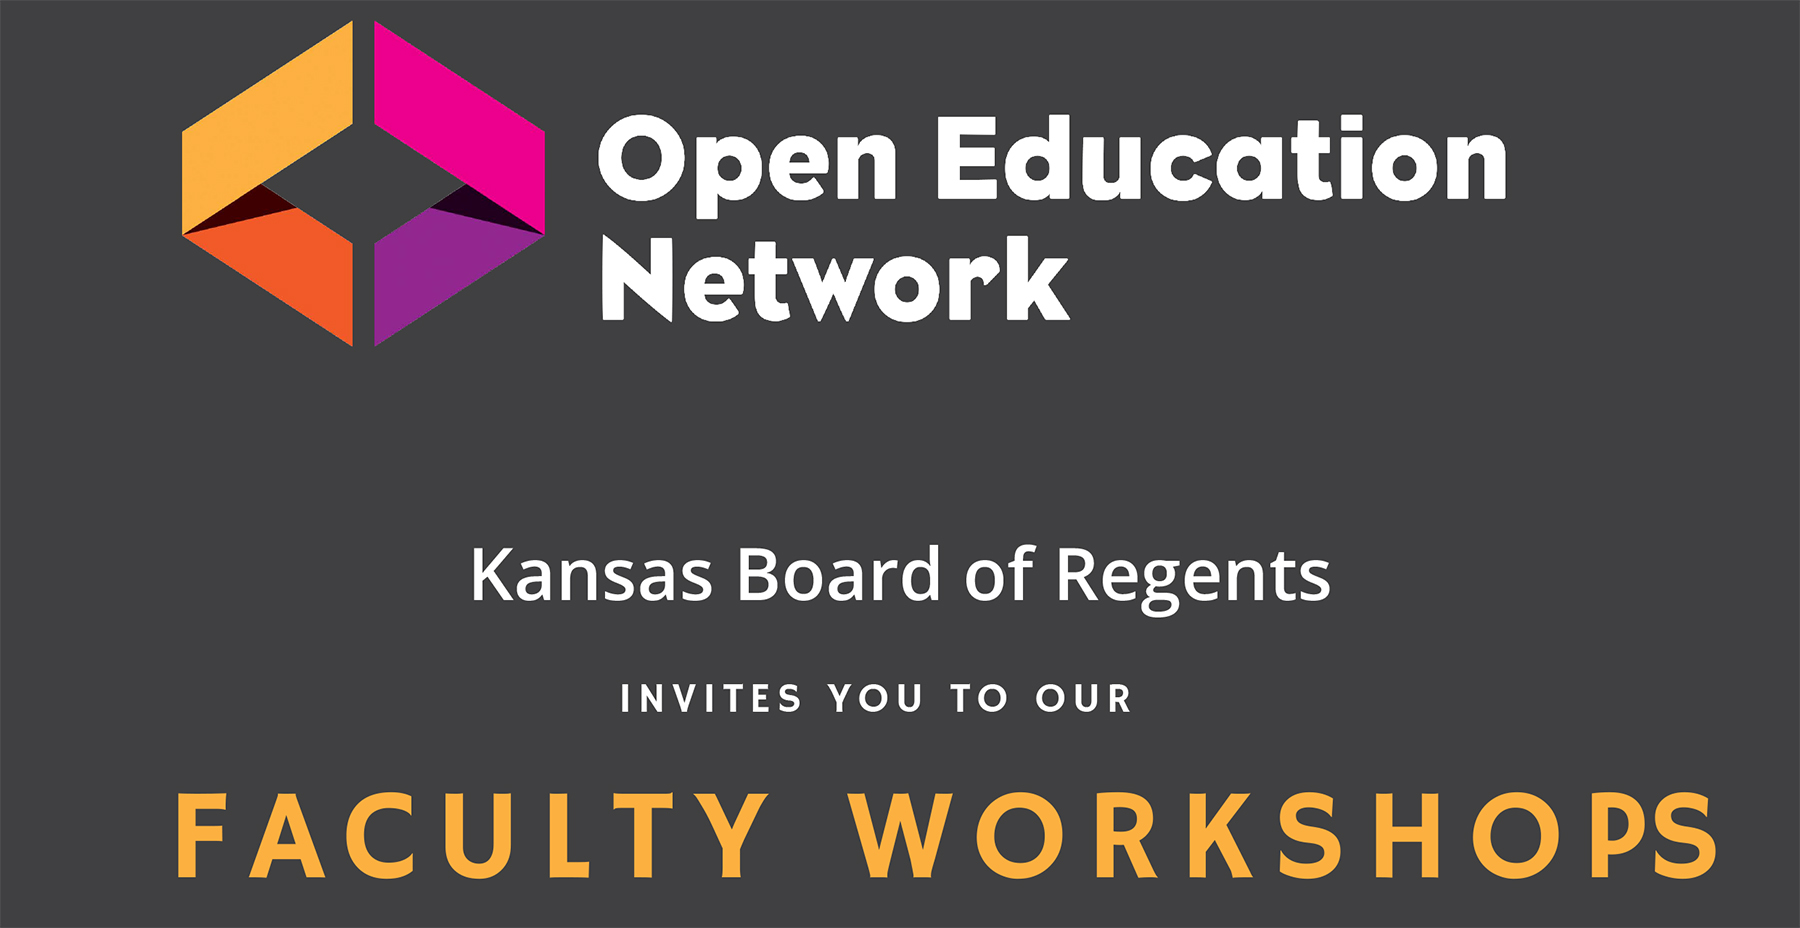 Open Education Network. Kansas Board of Regents invites you to our faculty workshops.